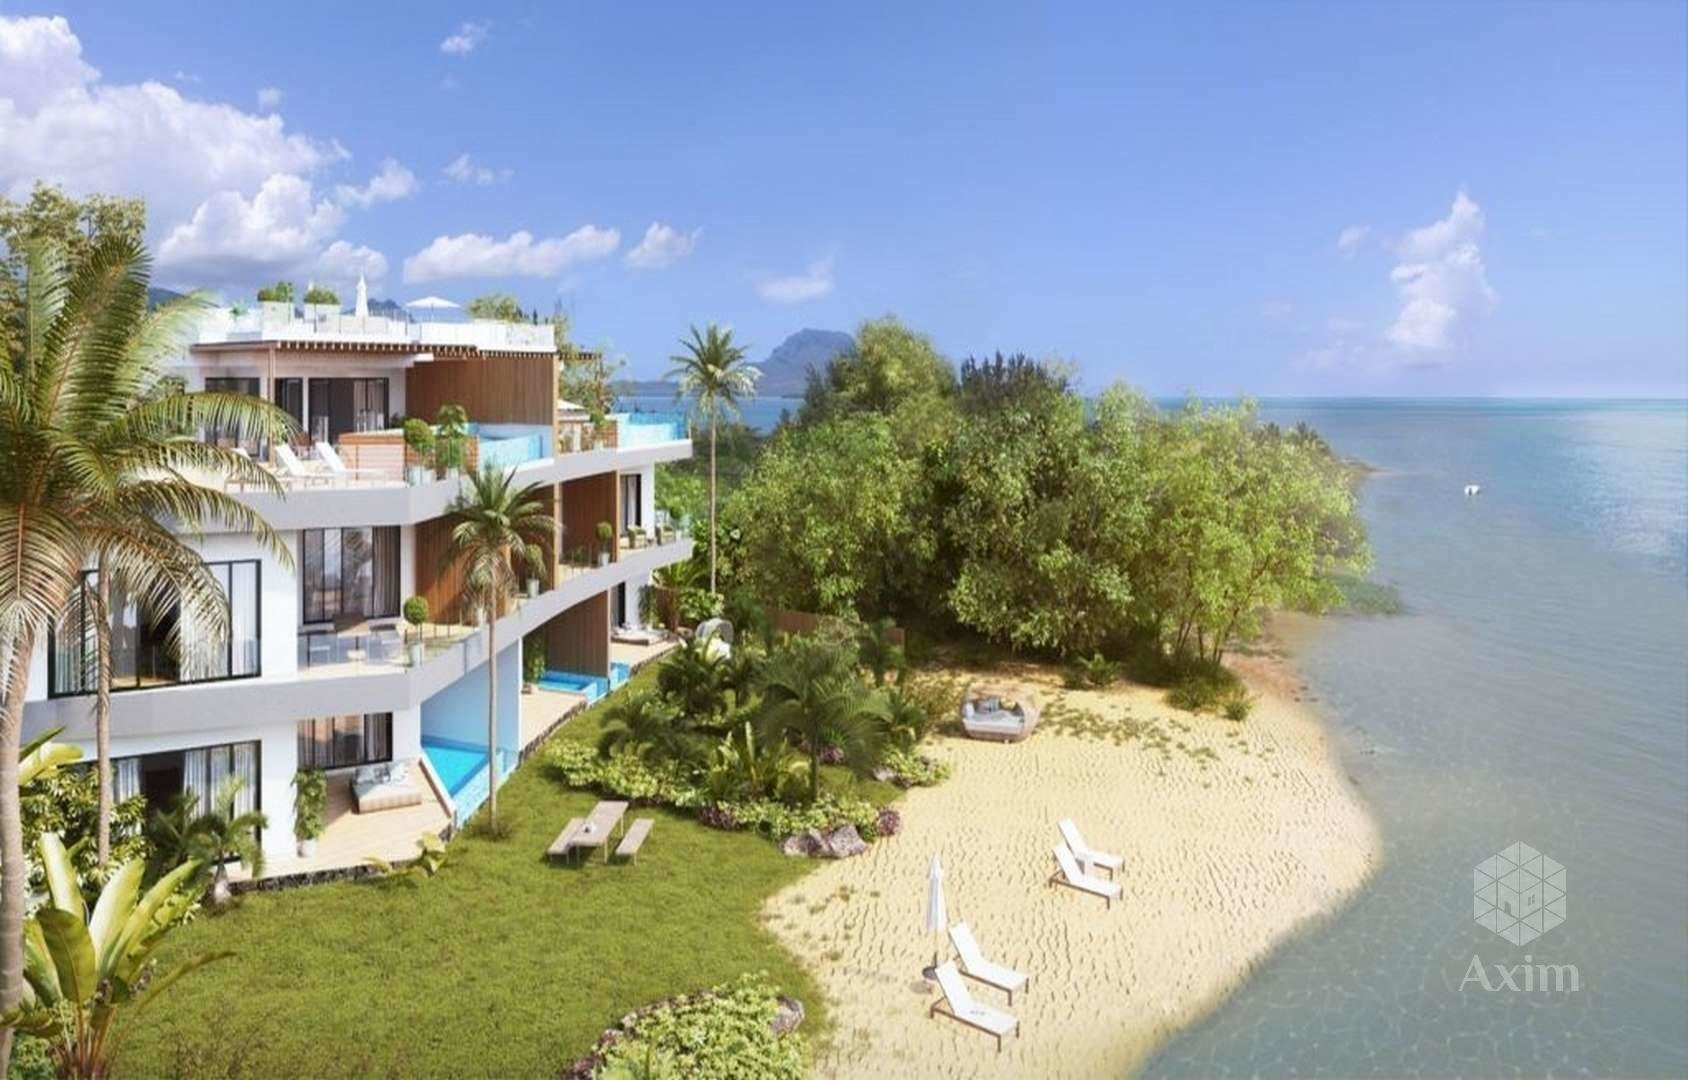 Mauritius- Pragram of 7 luxury apartments on an island